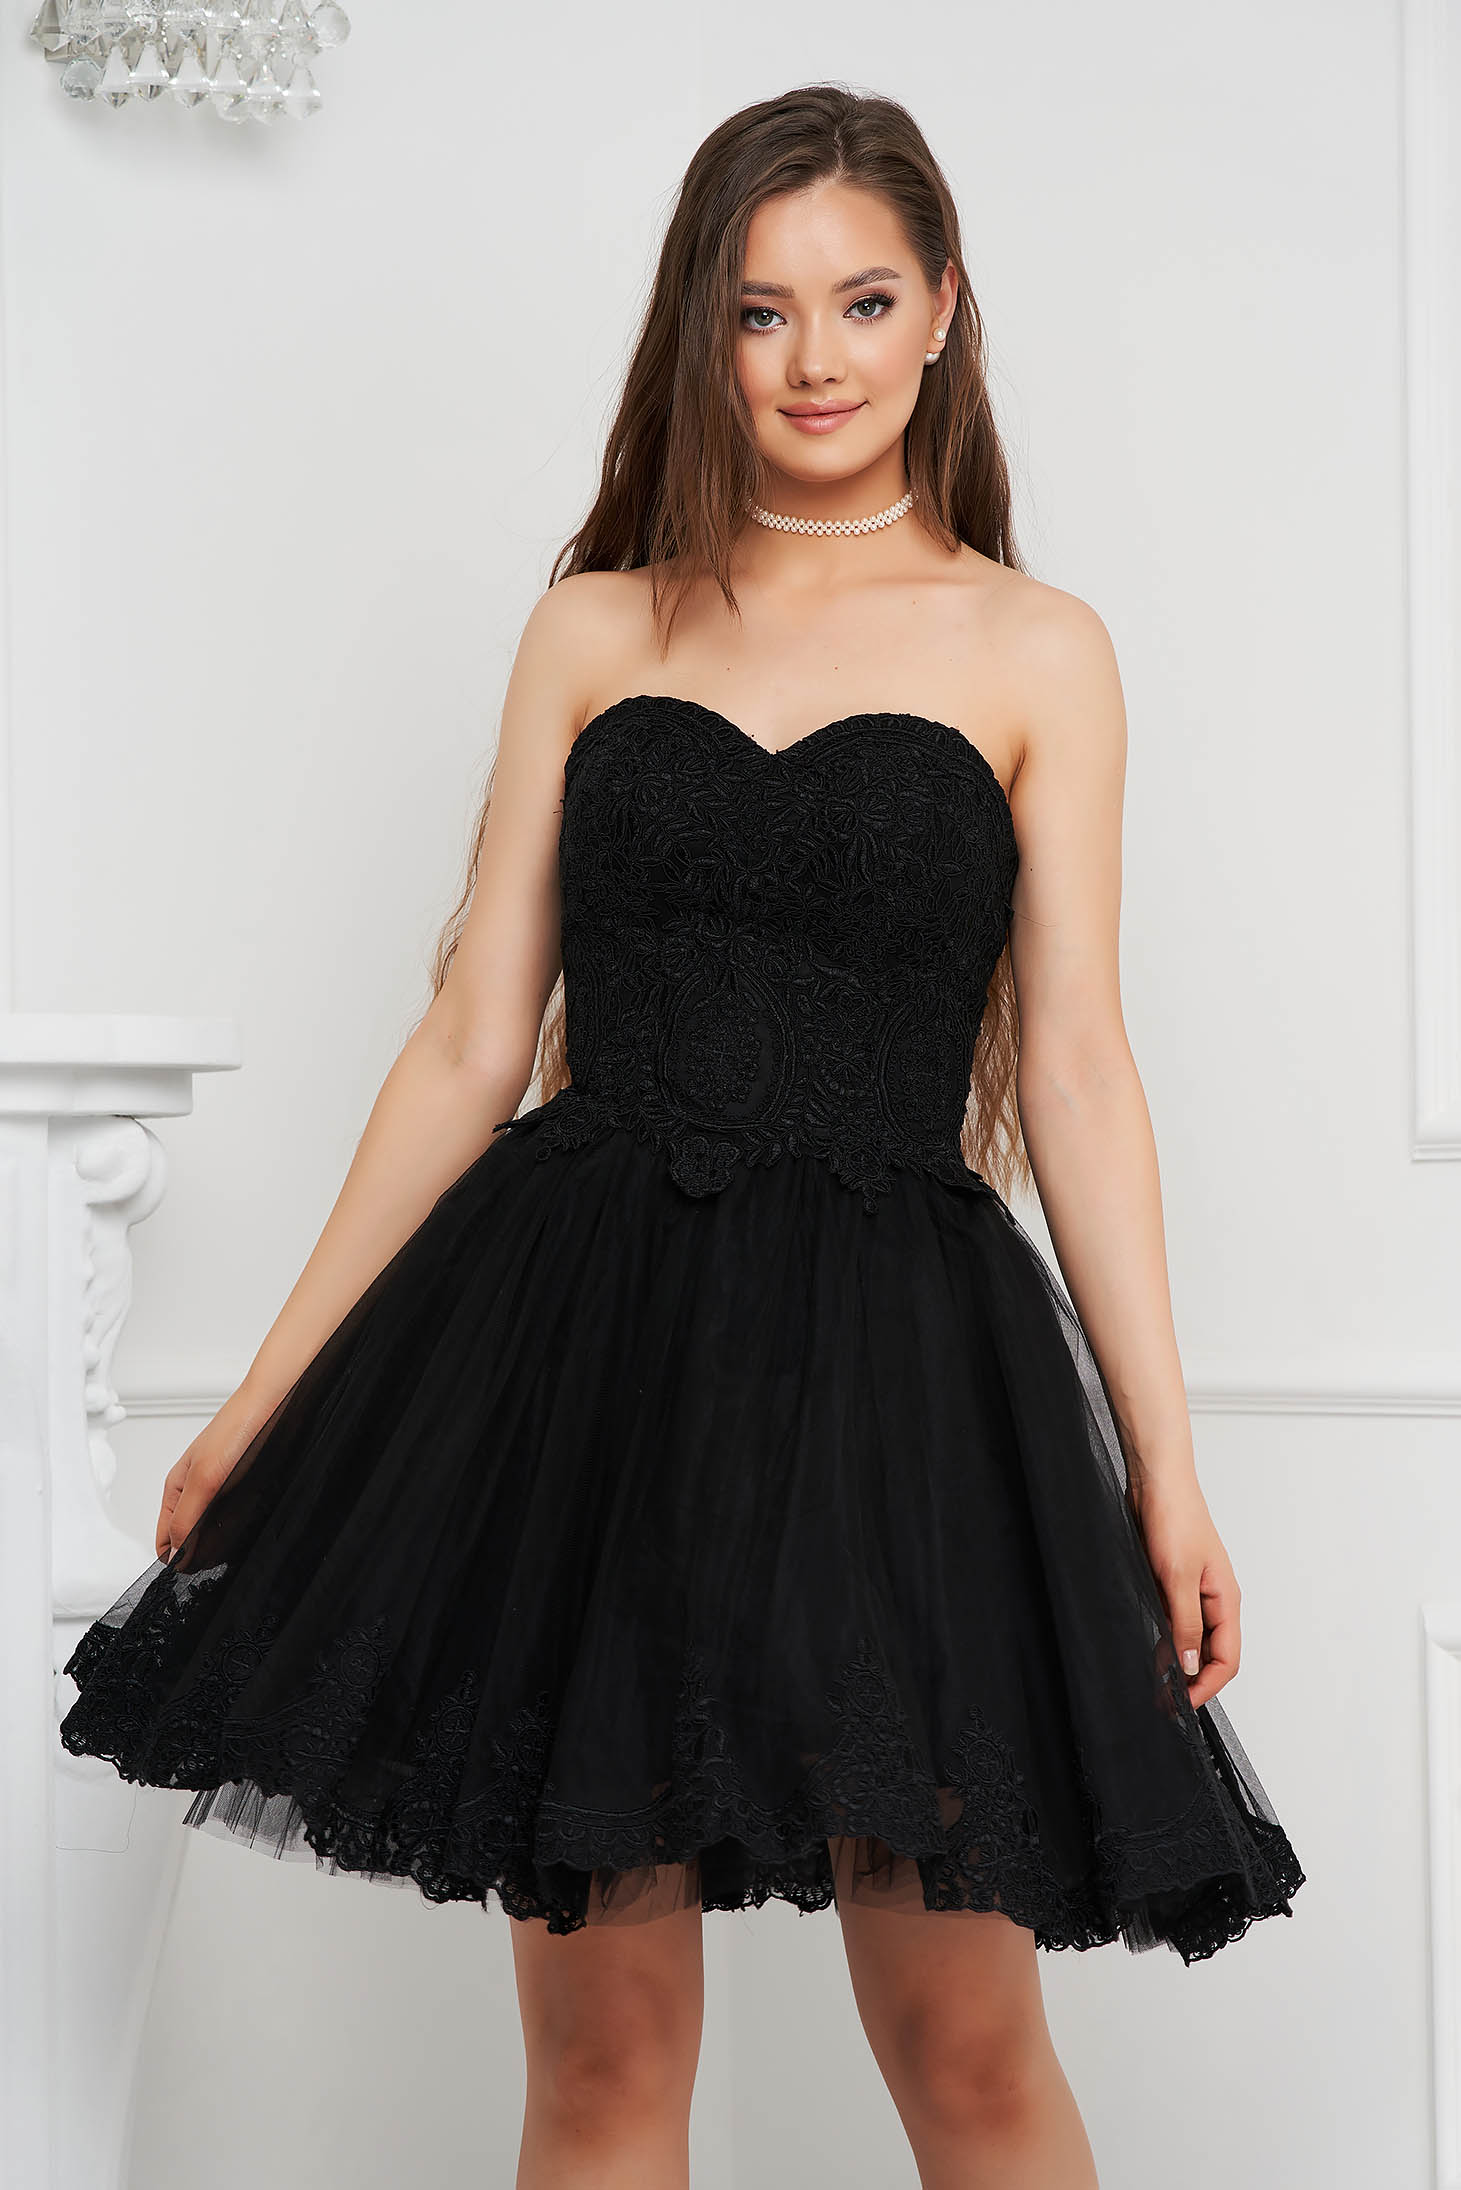 Black dress short cut occasional cloche from veil fabric with push-up cups with embroidery details